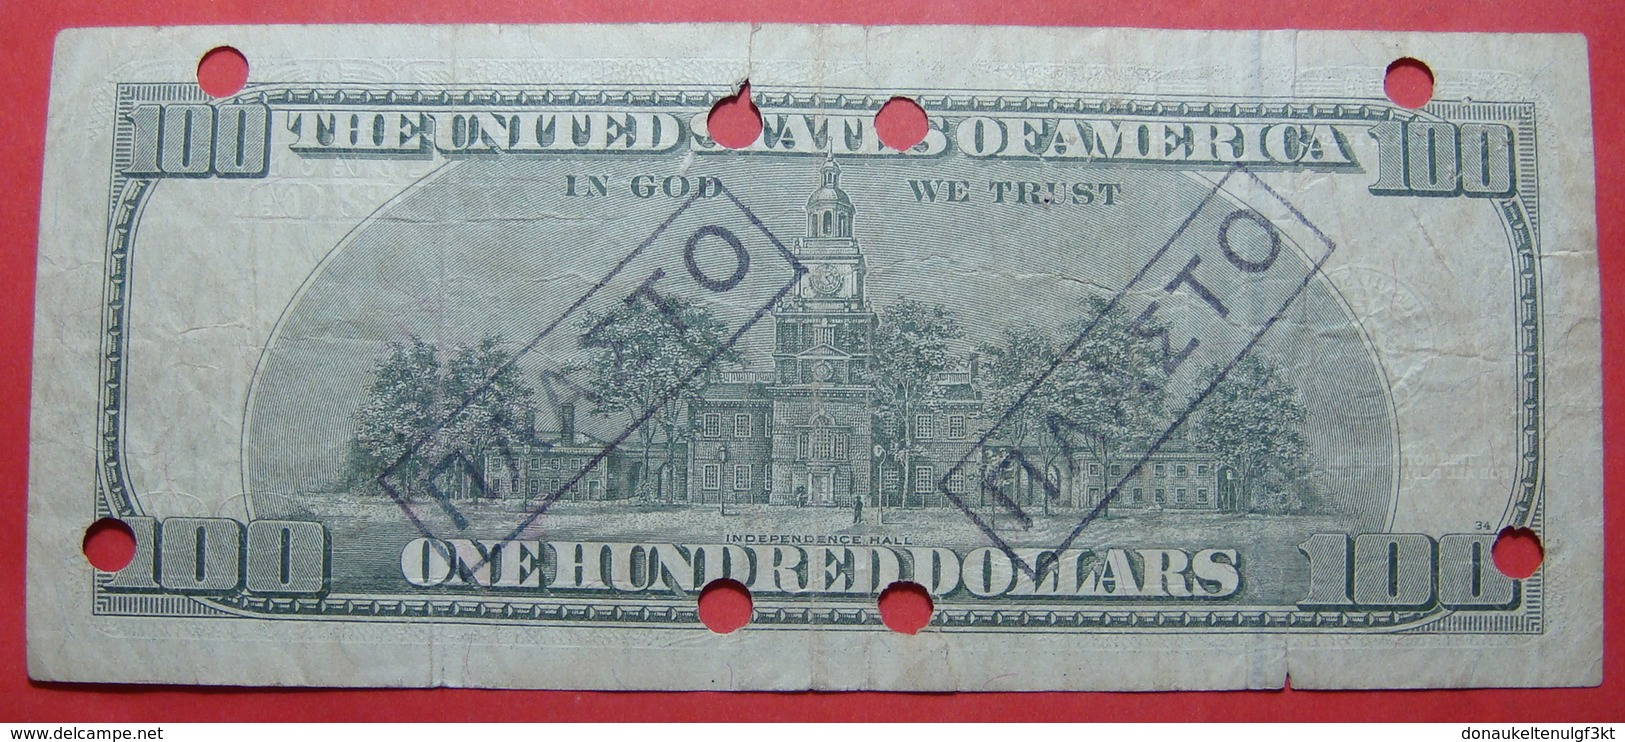 USA 100 DOLLARS 1996 FORGERY, CANCELLED FROM NATIONAL BANK OF GREECE, RRR - Erreurs